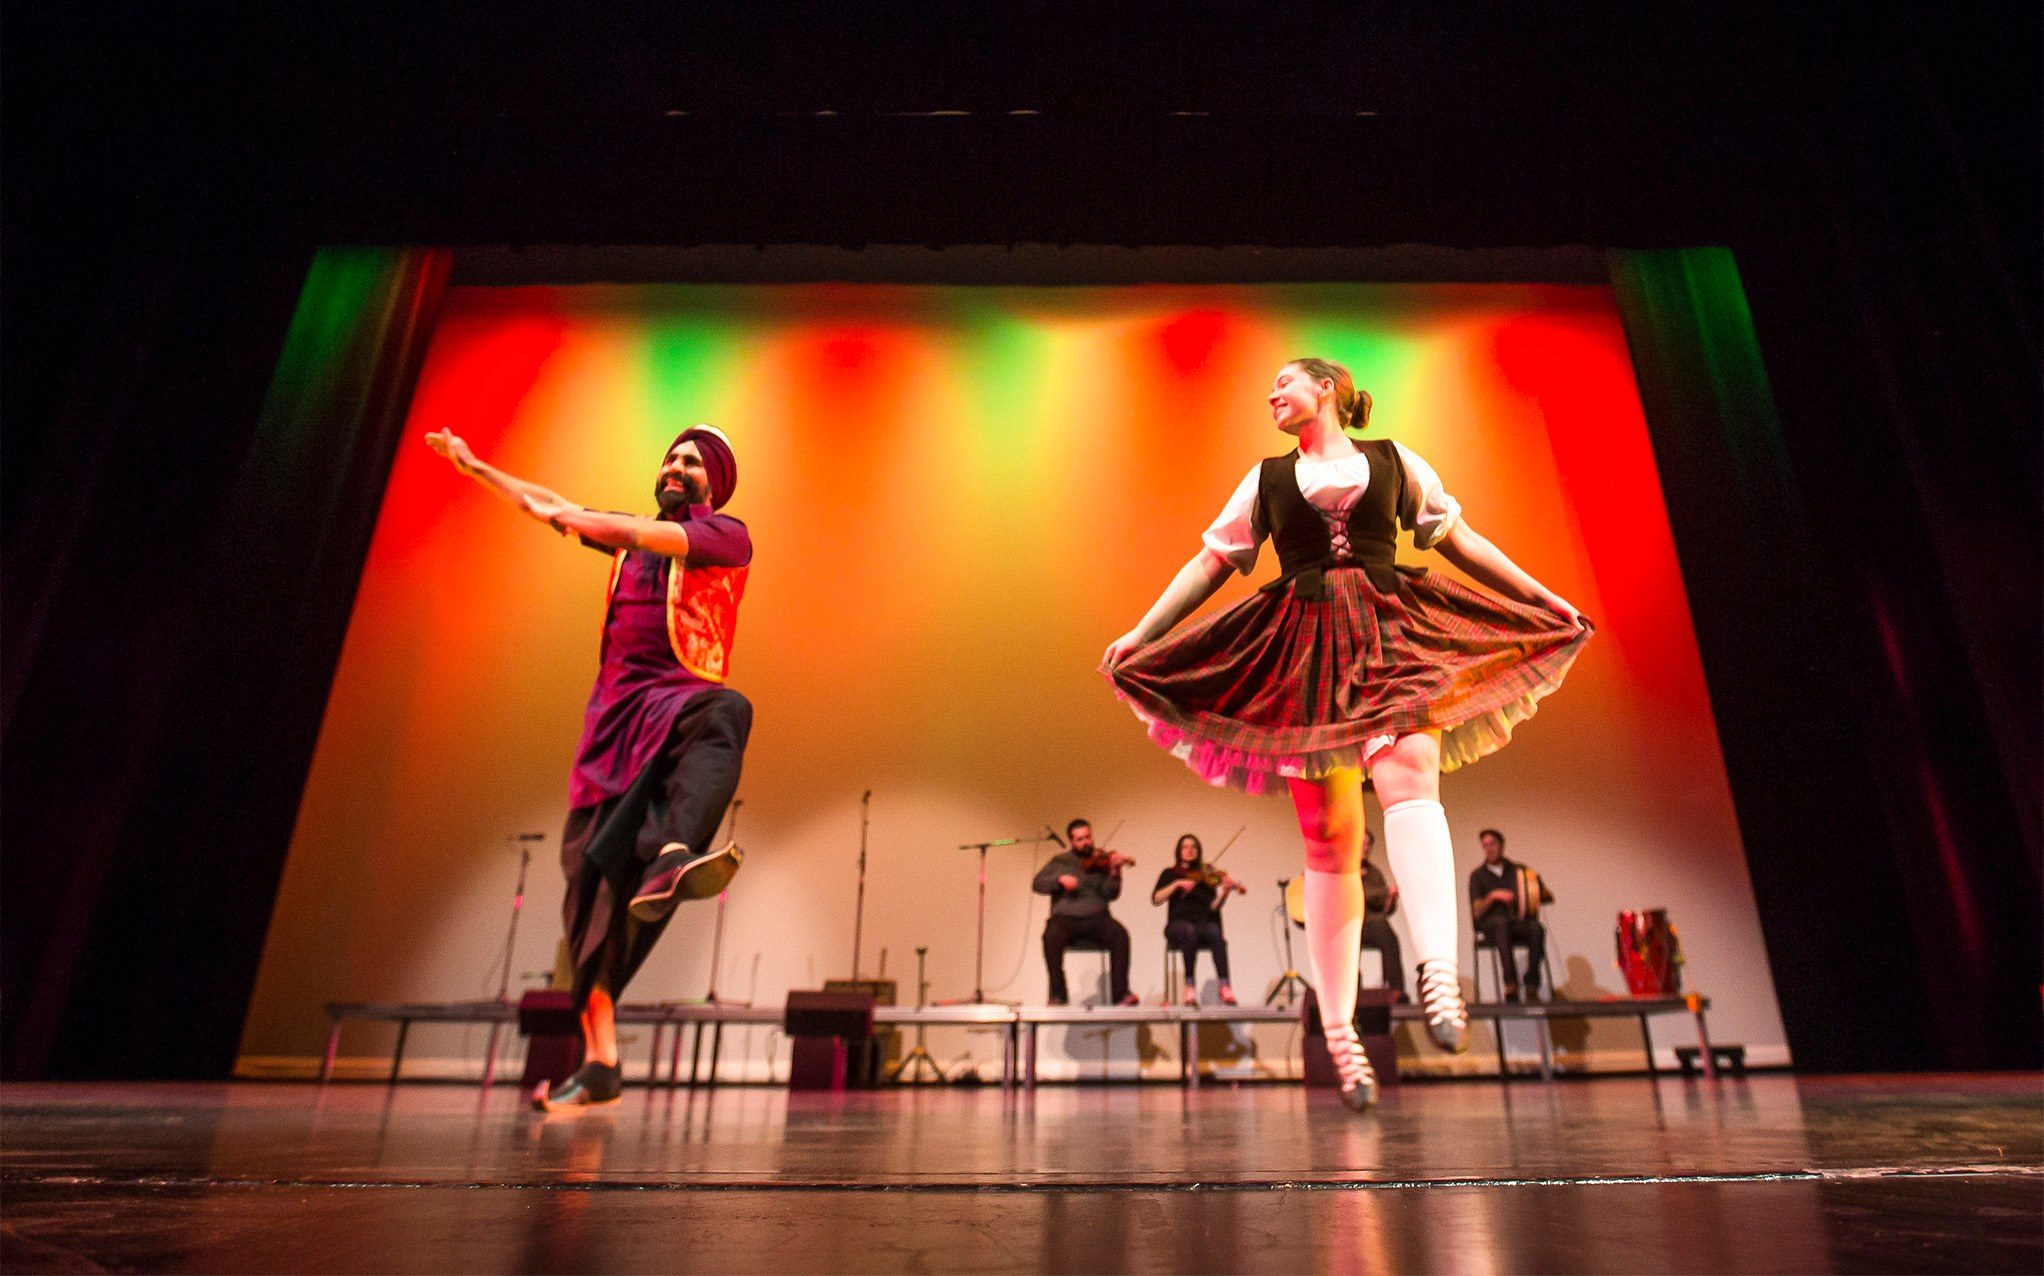 Gurdeep Pandher and Brianna Heal dance a bhangra/highland dance mashup during the Bhangra - Dance of Punjab show at the Yukon Arts Centre in Whitehorse on Dec. 18, 2018 | Photo by: Crystal Schick/Yukon News